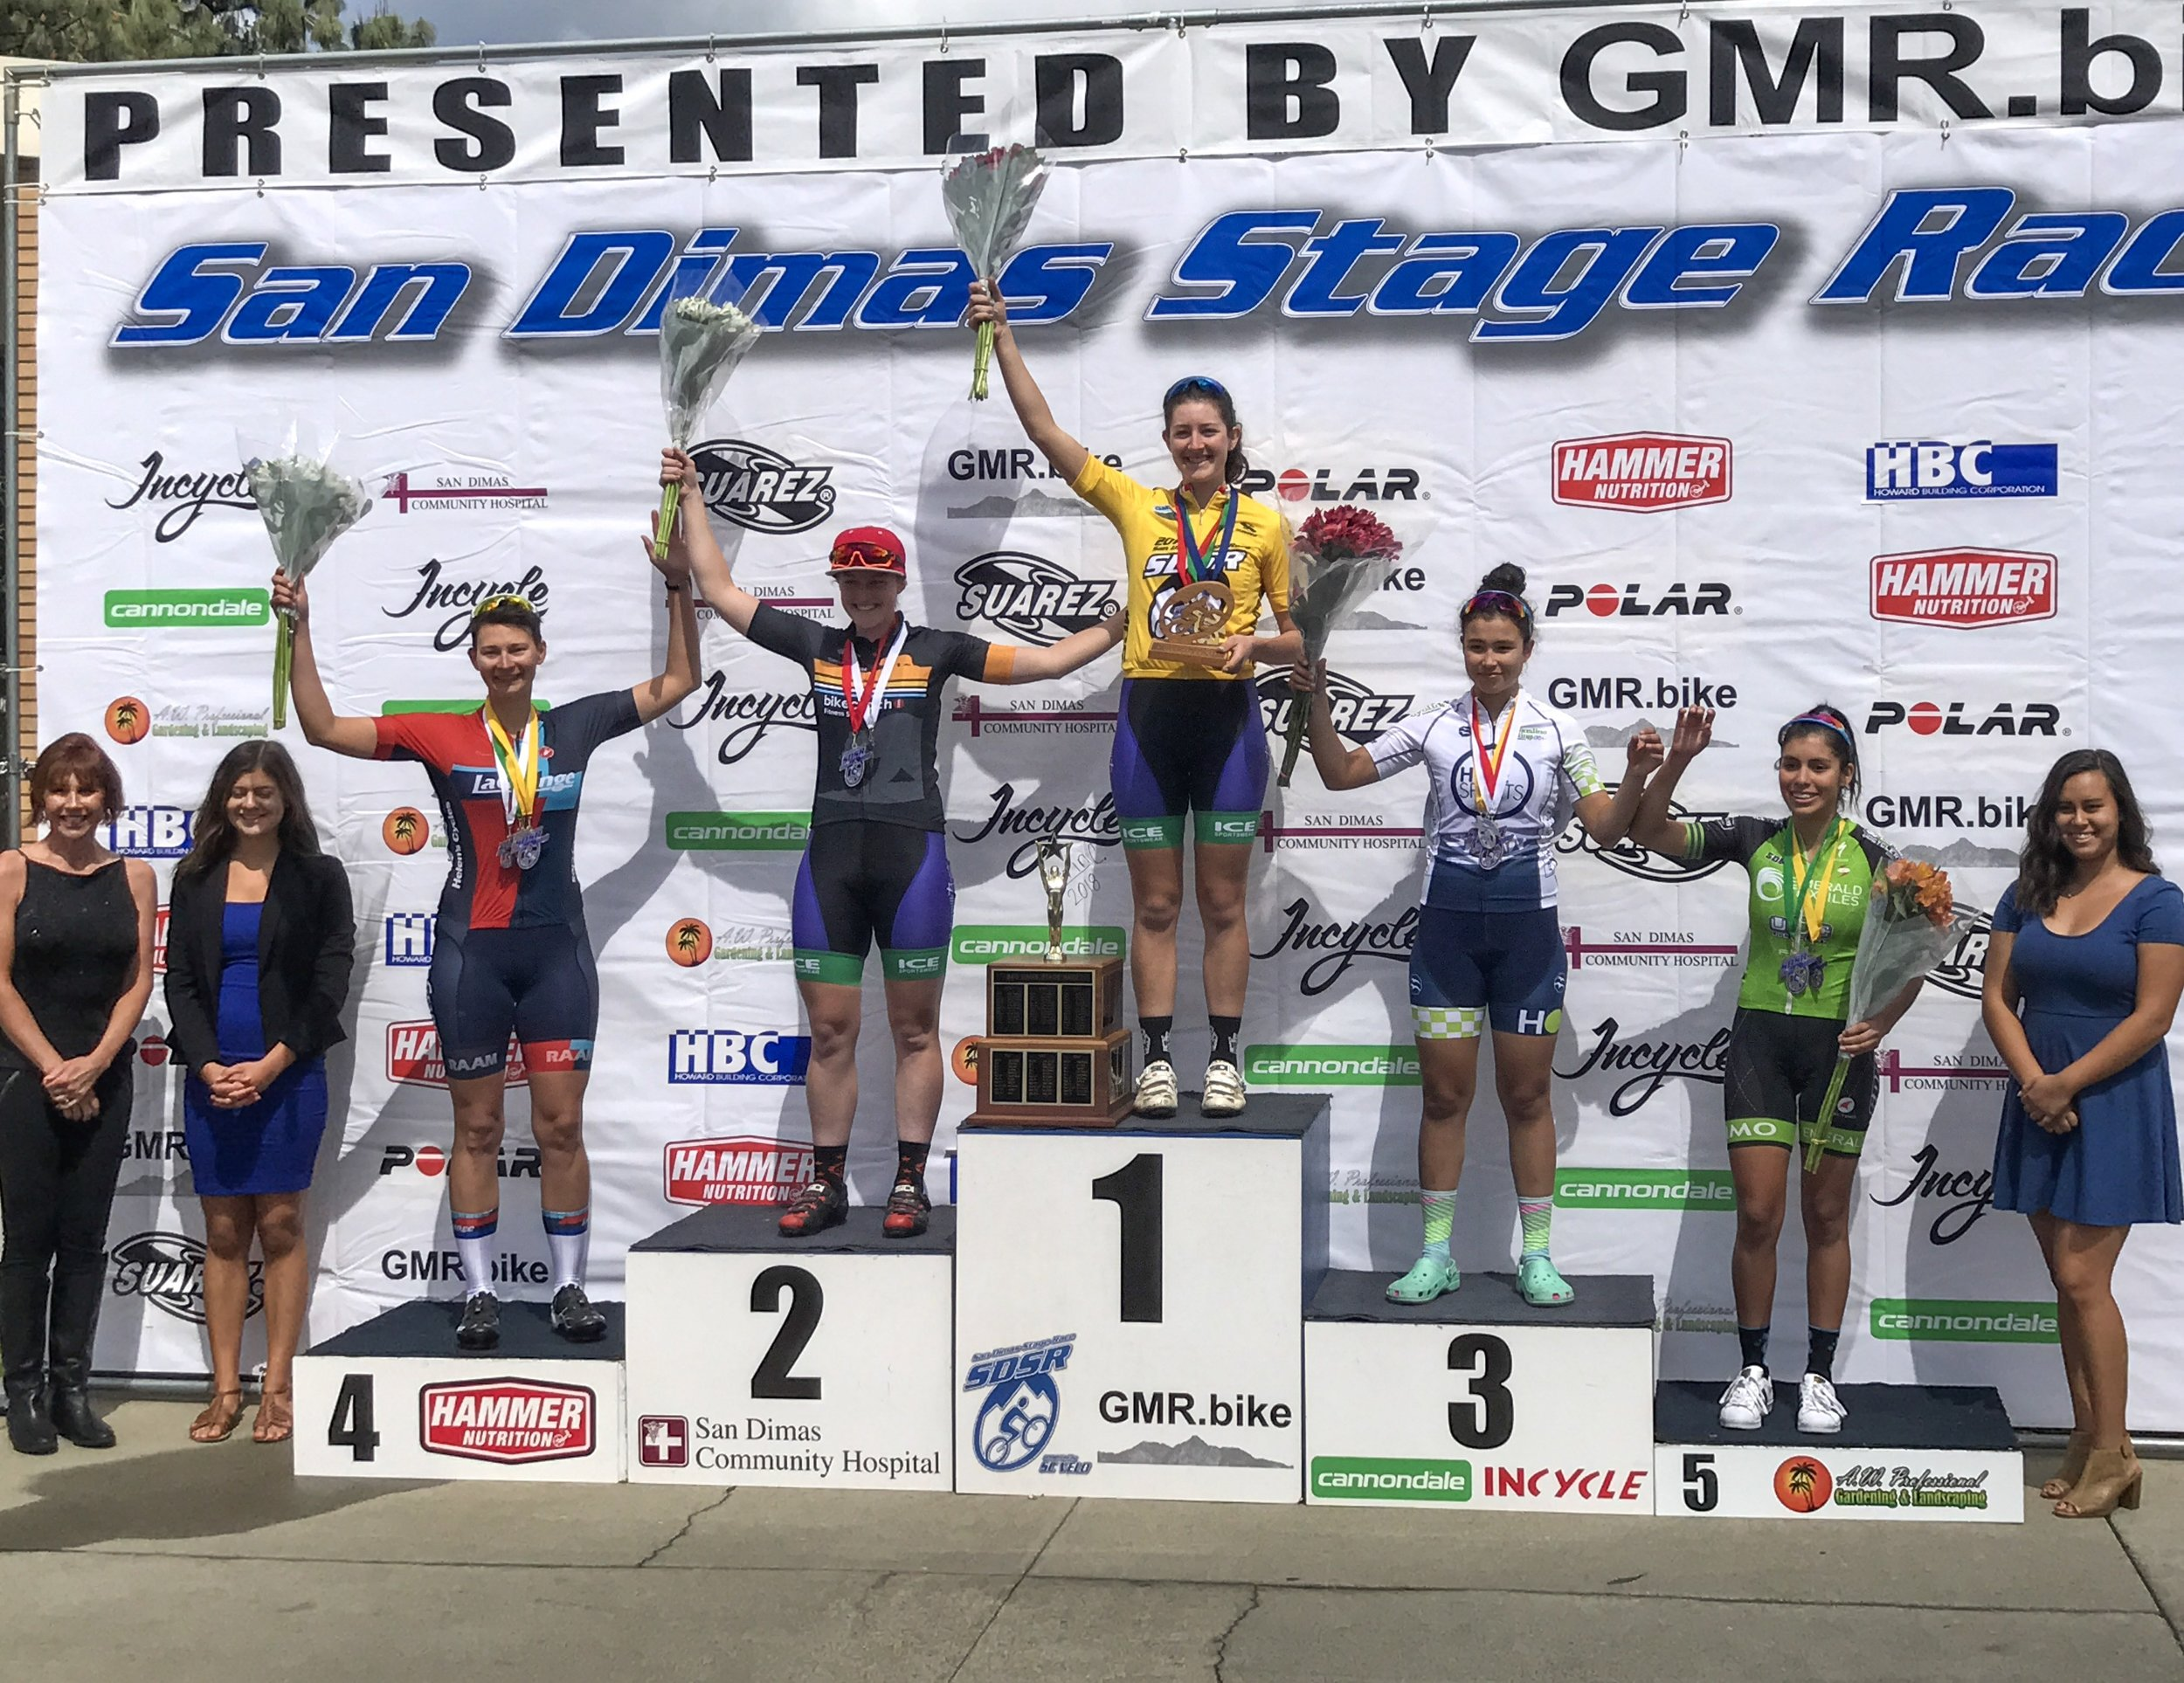 After placing 5th in the TT, 3rd in the road race and 4th in the crit, Tina Grant earned 4th overall in the W Cat 4 GC